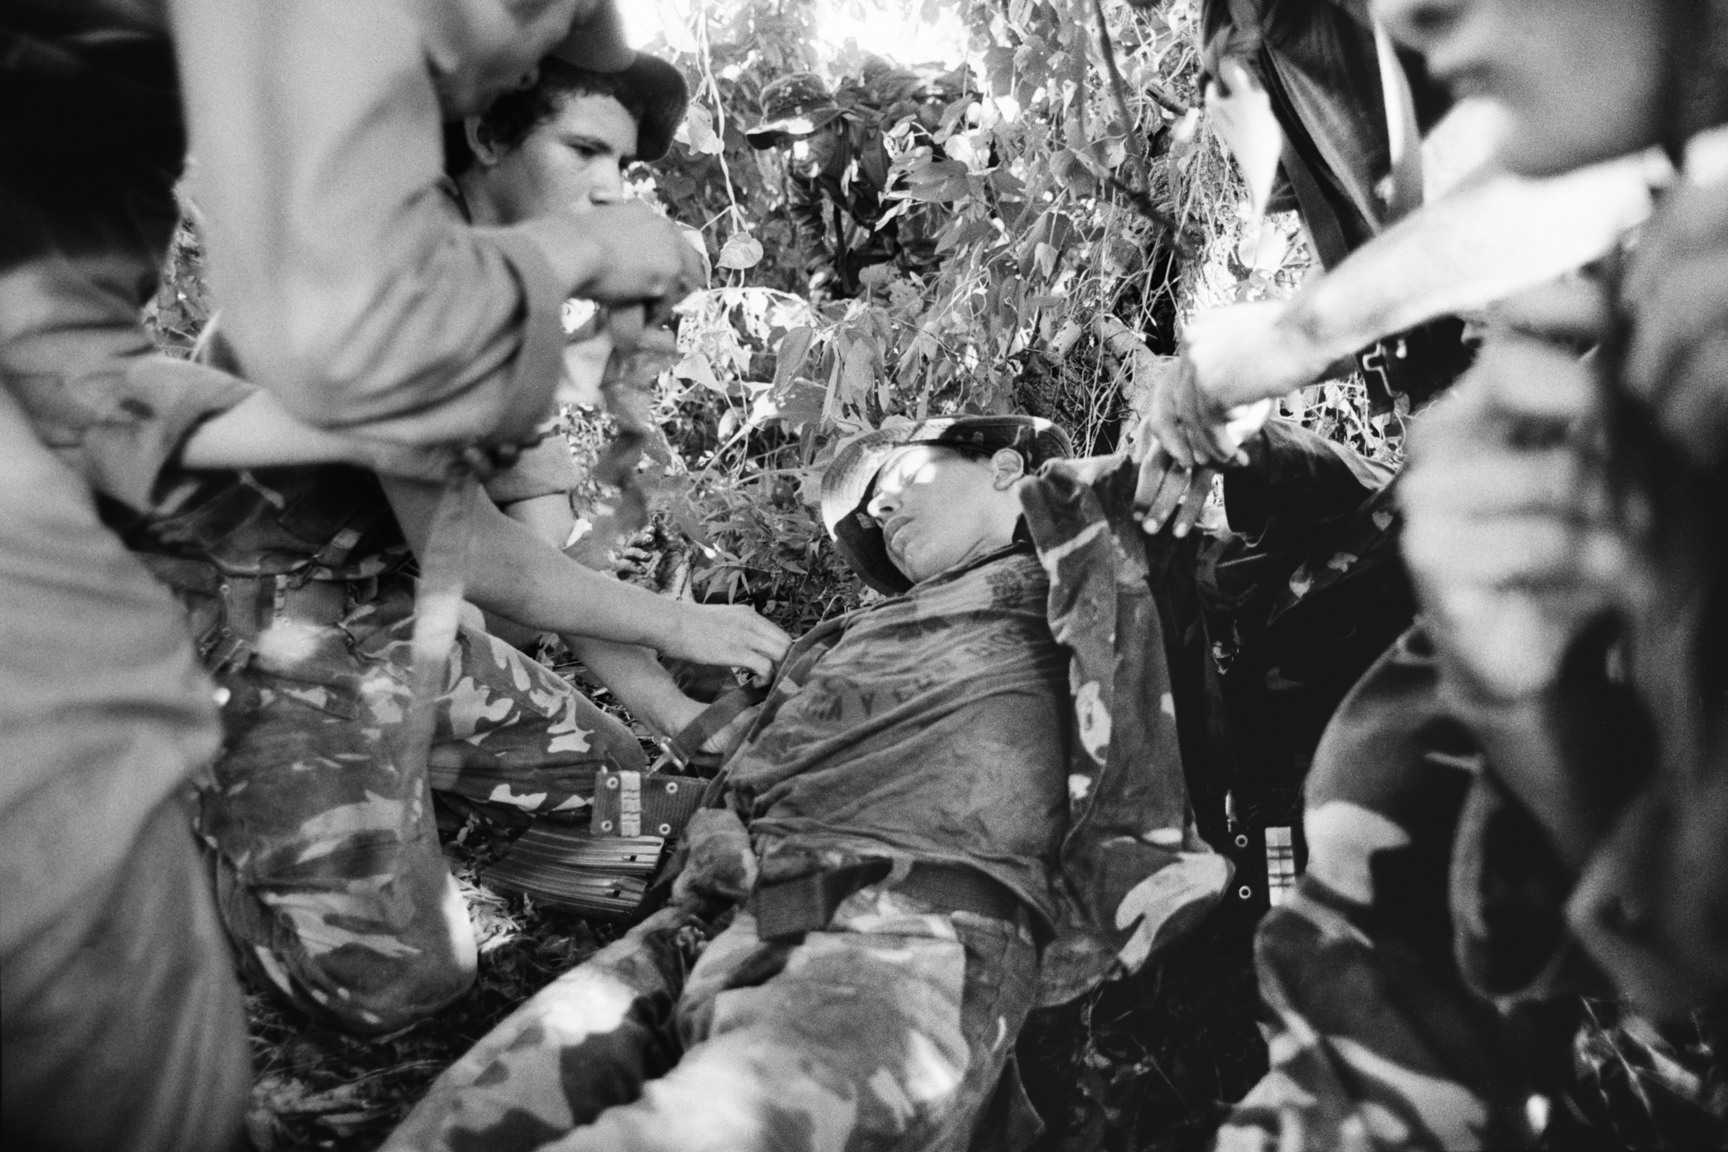 Salvadoran army soldiers of the Atlacatl battalion tend to a wounded soldier during a military operation September 1983 in San Miguel department, El Salvador. The Atlacatl battalion was the first U.S.-trained battalion of the Salvadoran army and here are in pursuit of guerrilla forces belonging to the Ejército Revolucionario del Pueblo, or ERP, one of the five leftist guerrilla organizations that comprised the Frente Farabundo Martí para la Liberación Nacional, FMLN.